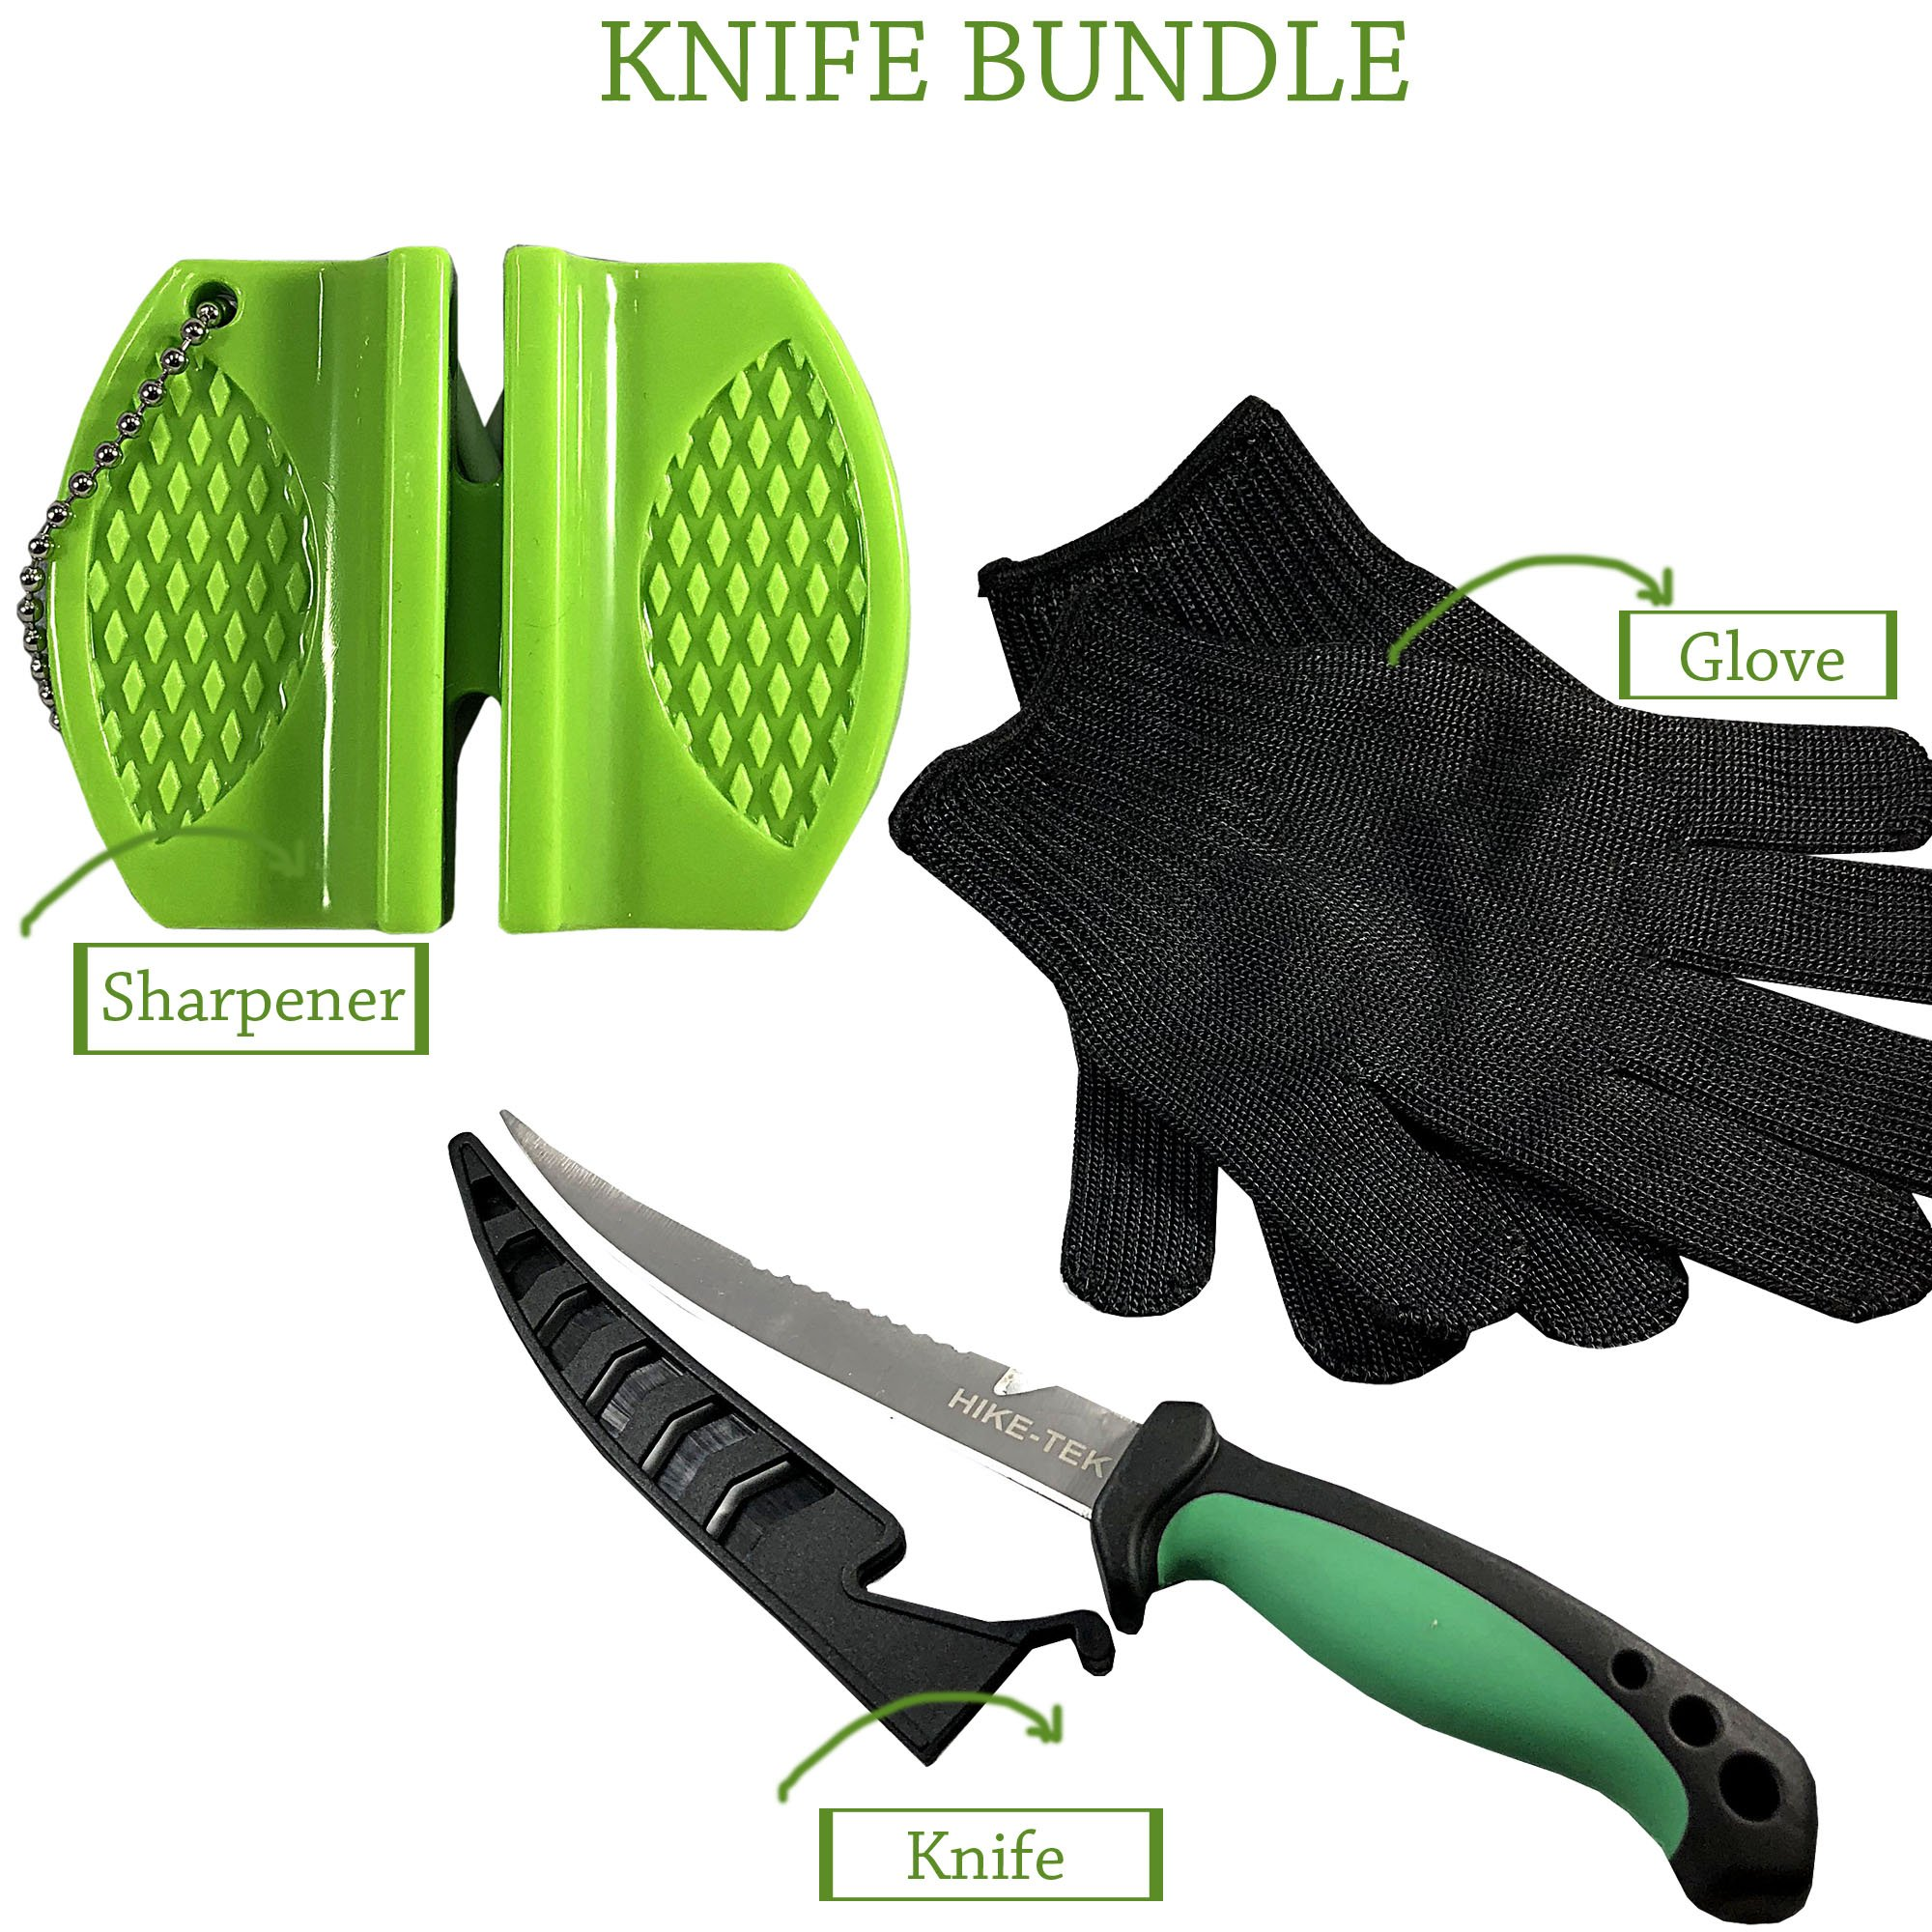 HIKE-TEK Premium 6.5 Inch Fillet knife With Sharpener and Anti-Cut Gloves Included. Portable Stainless Steel Blade- Best Gift Idea by